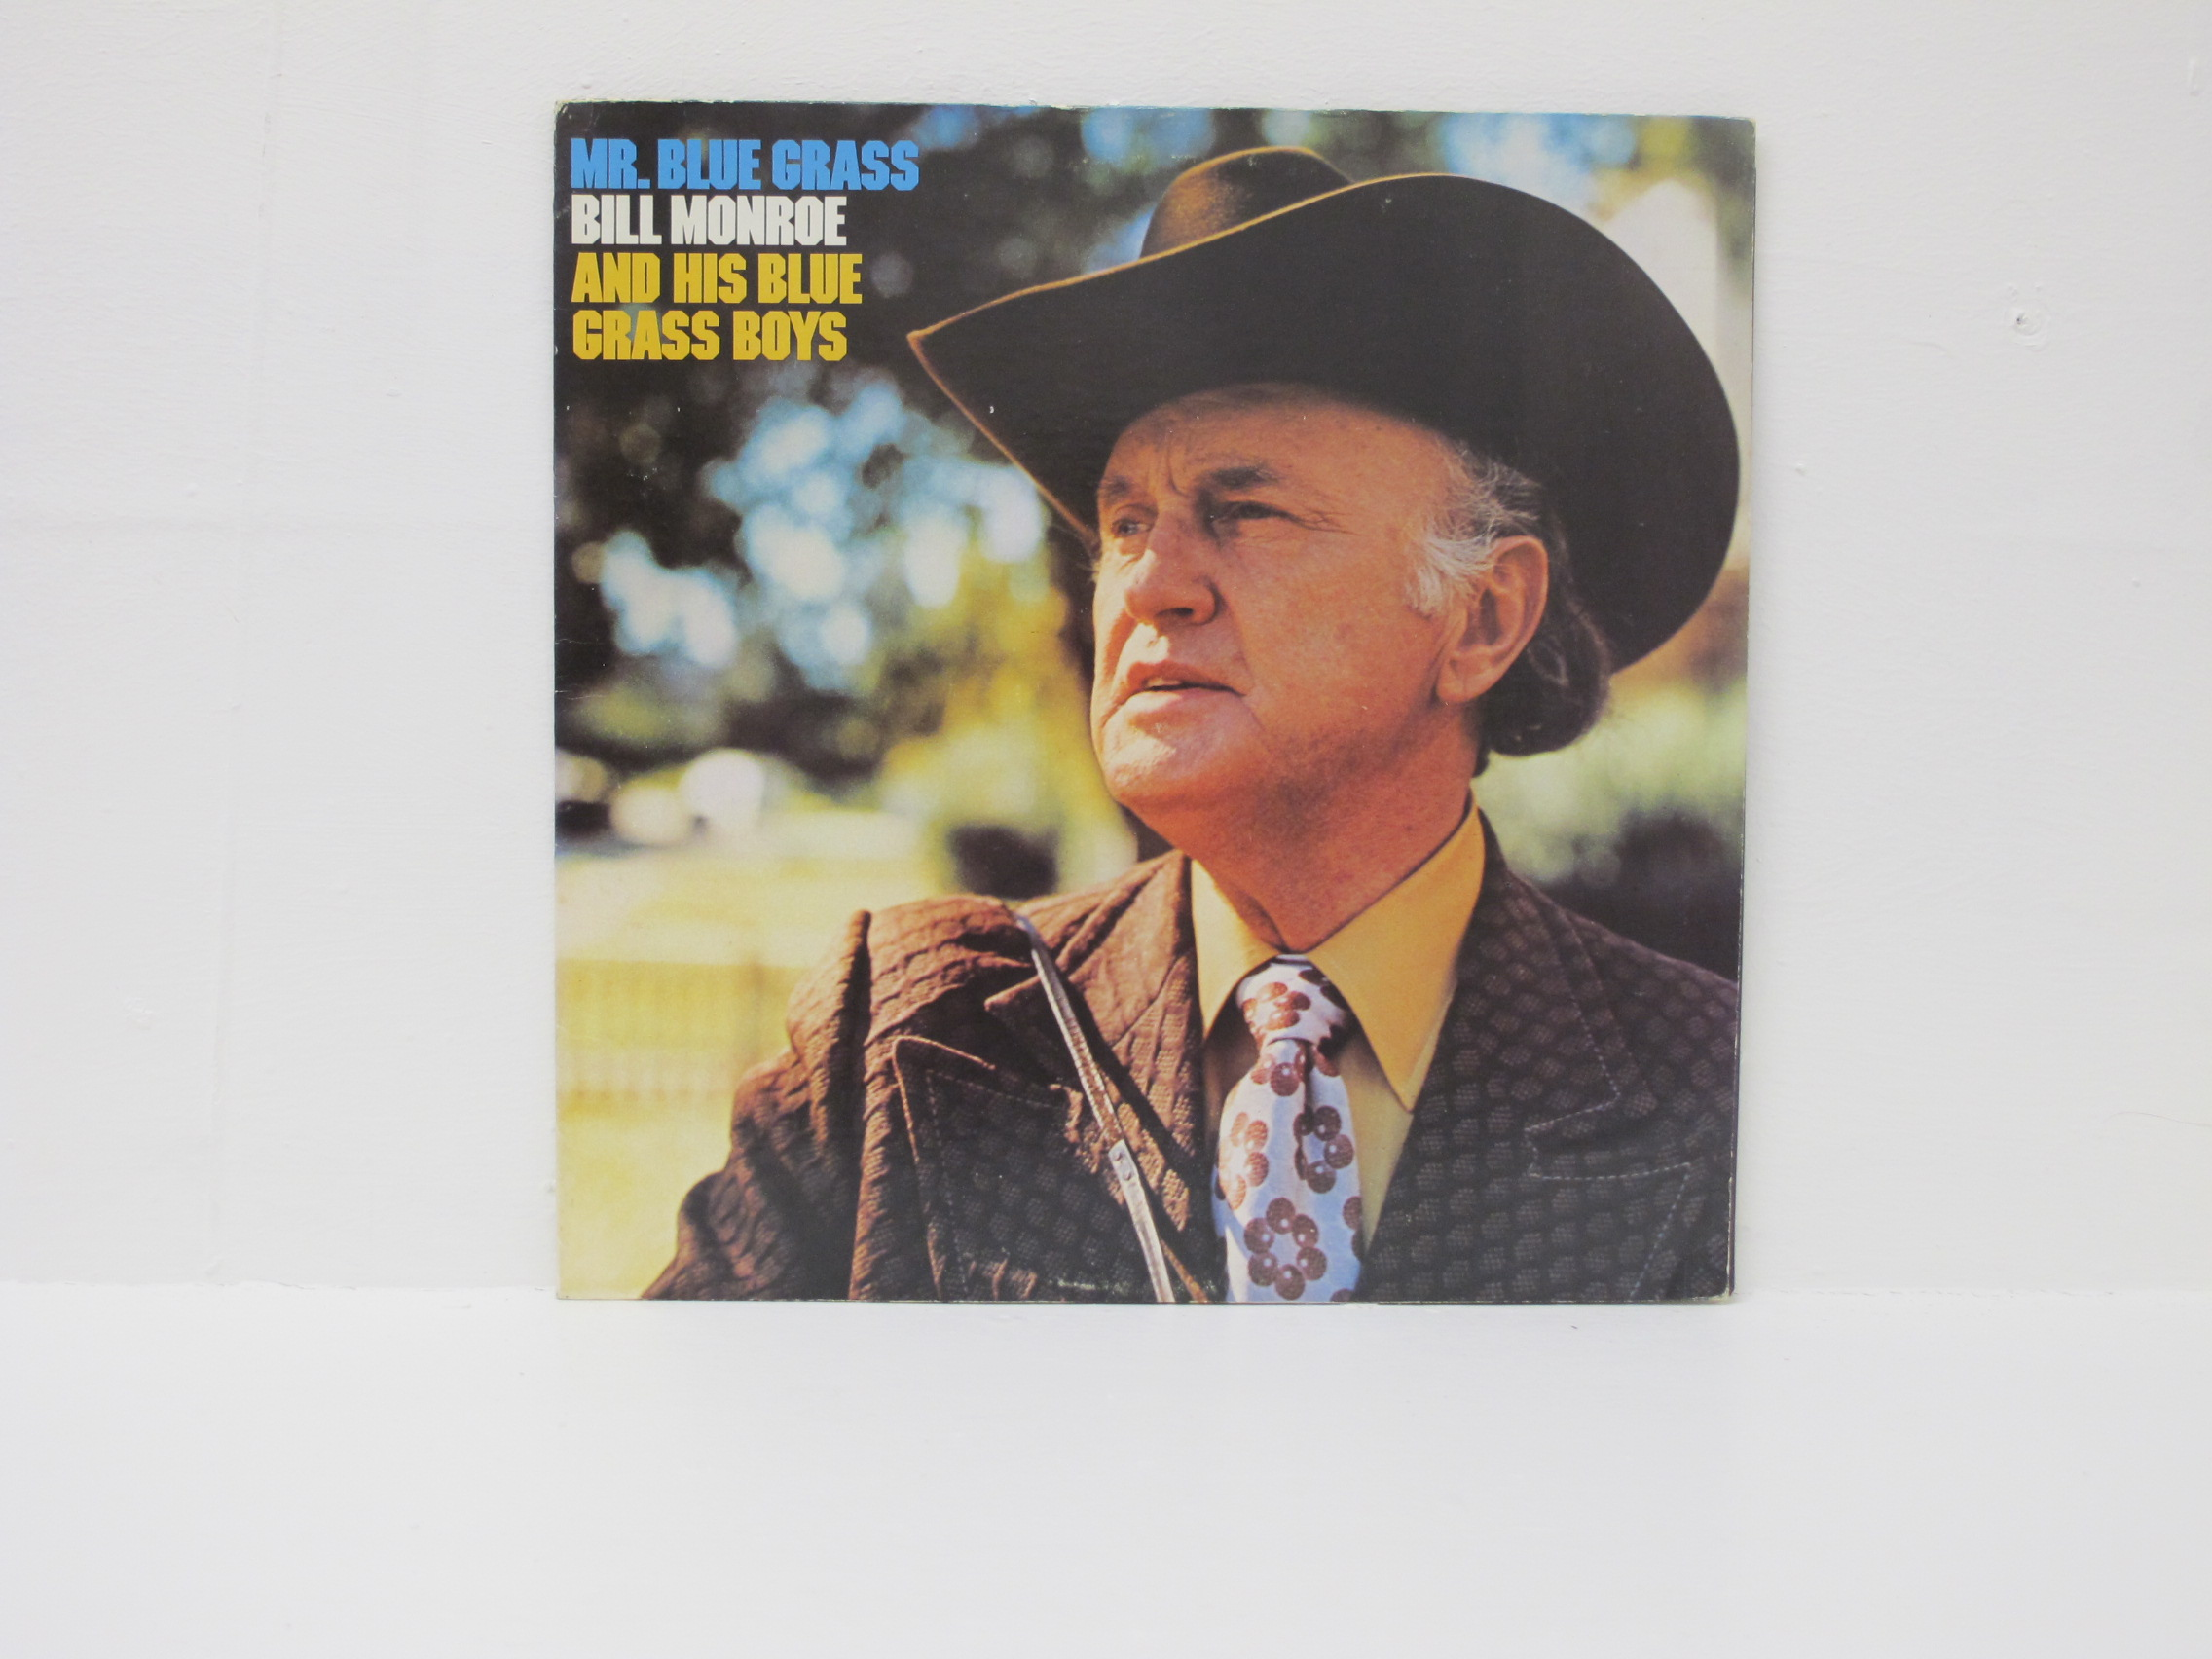 Bill Monroe And His Blue Grass Boys - Mr Blue Grass